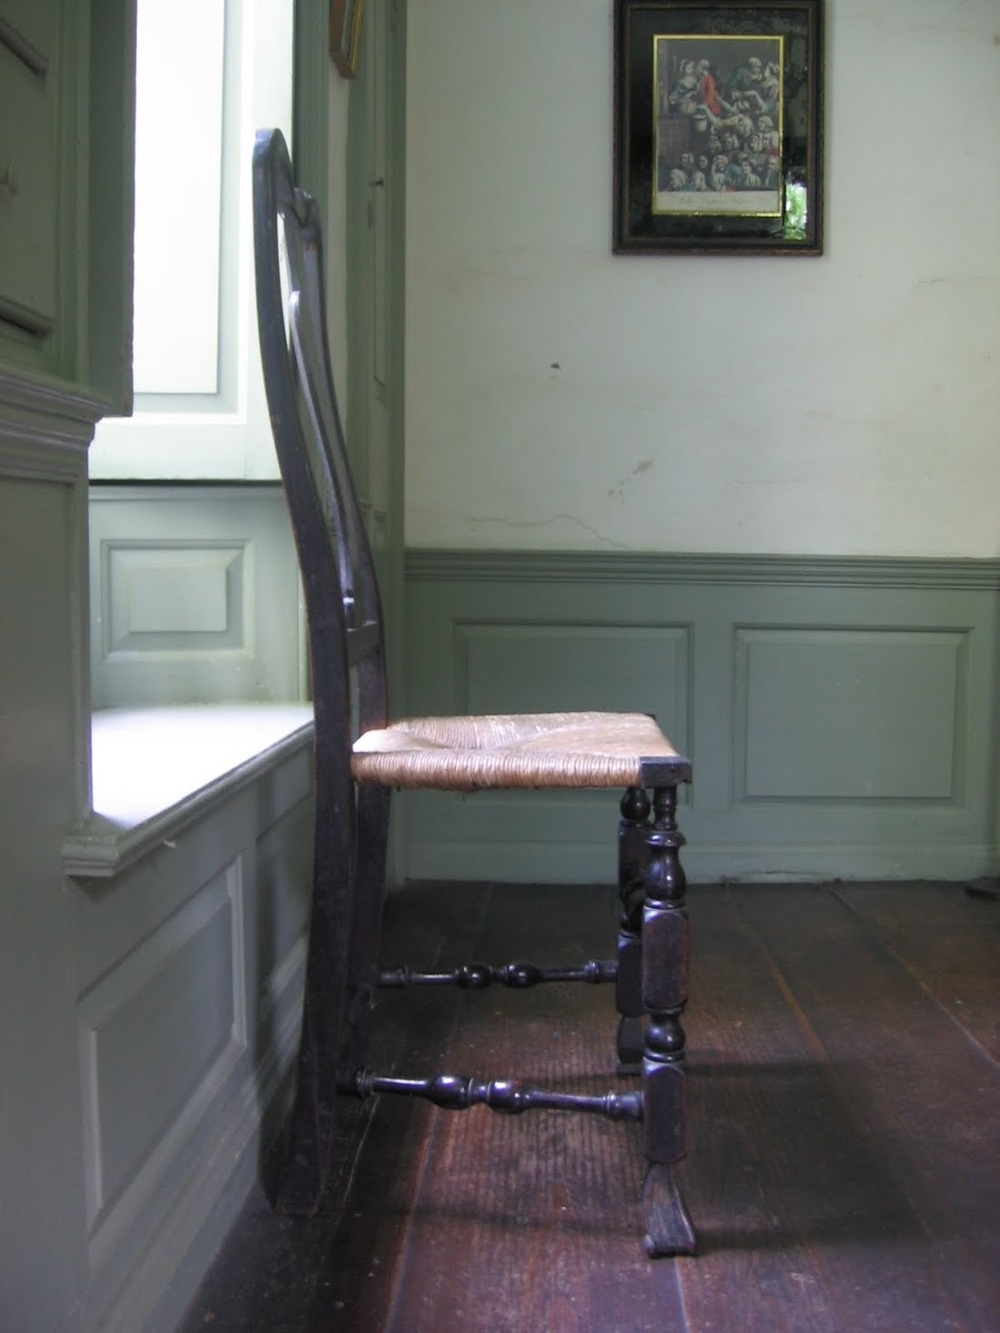 One of the chairs described below against paneling installed by Gaylord in 1775 in the Long Room.